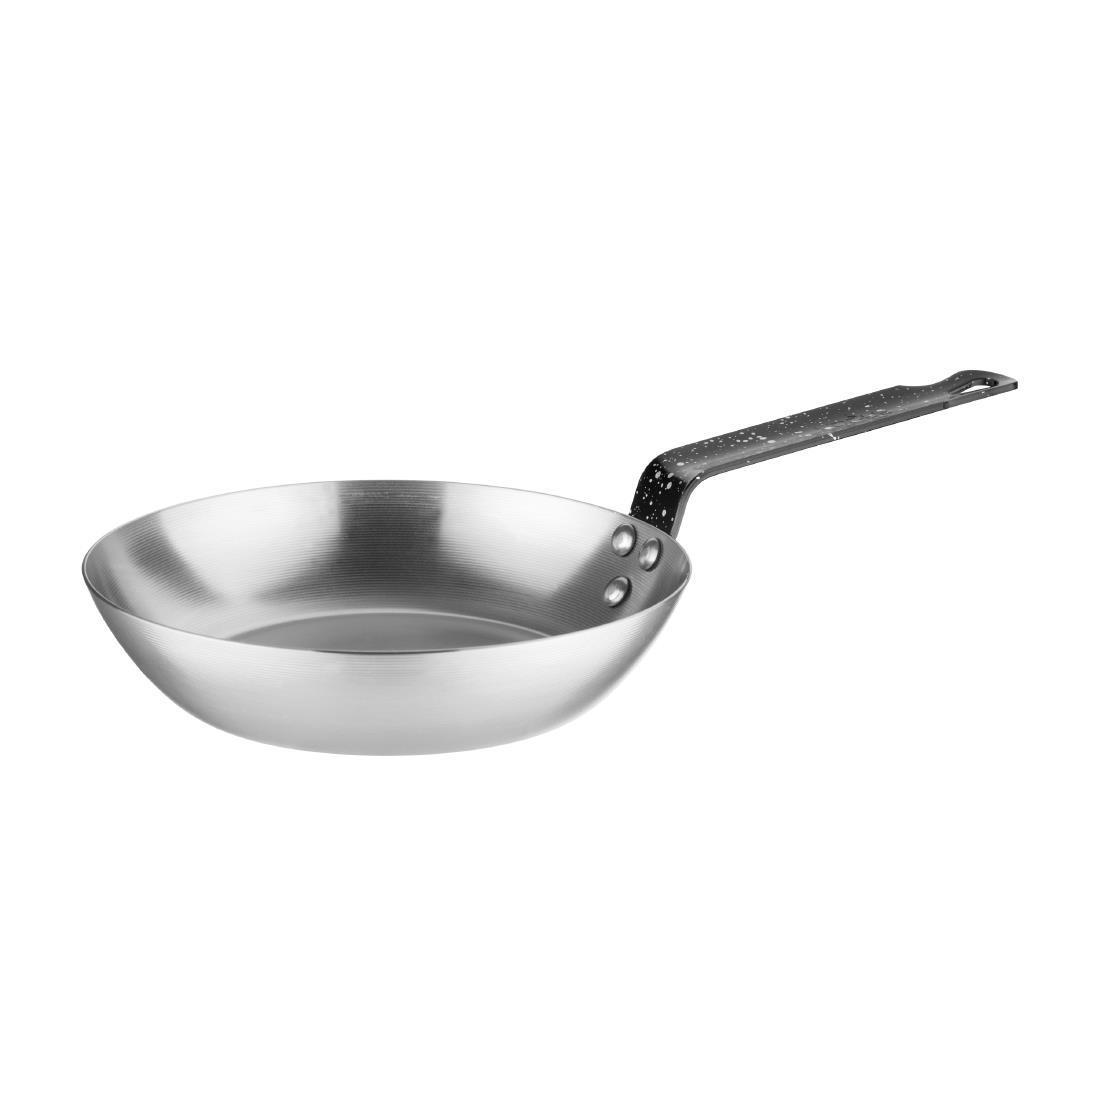 Vogue Black Iron Induction Frying Pan 200mm - Each - GD063